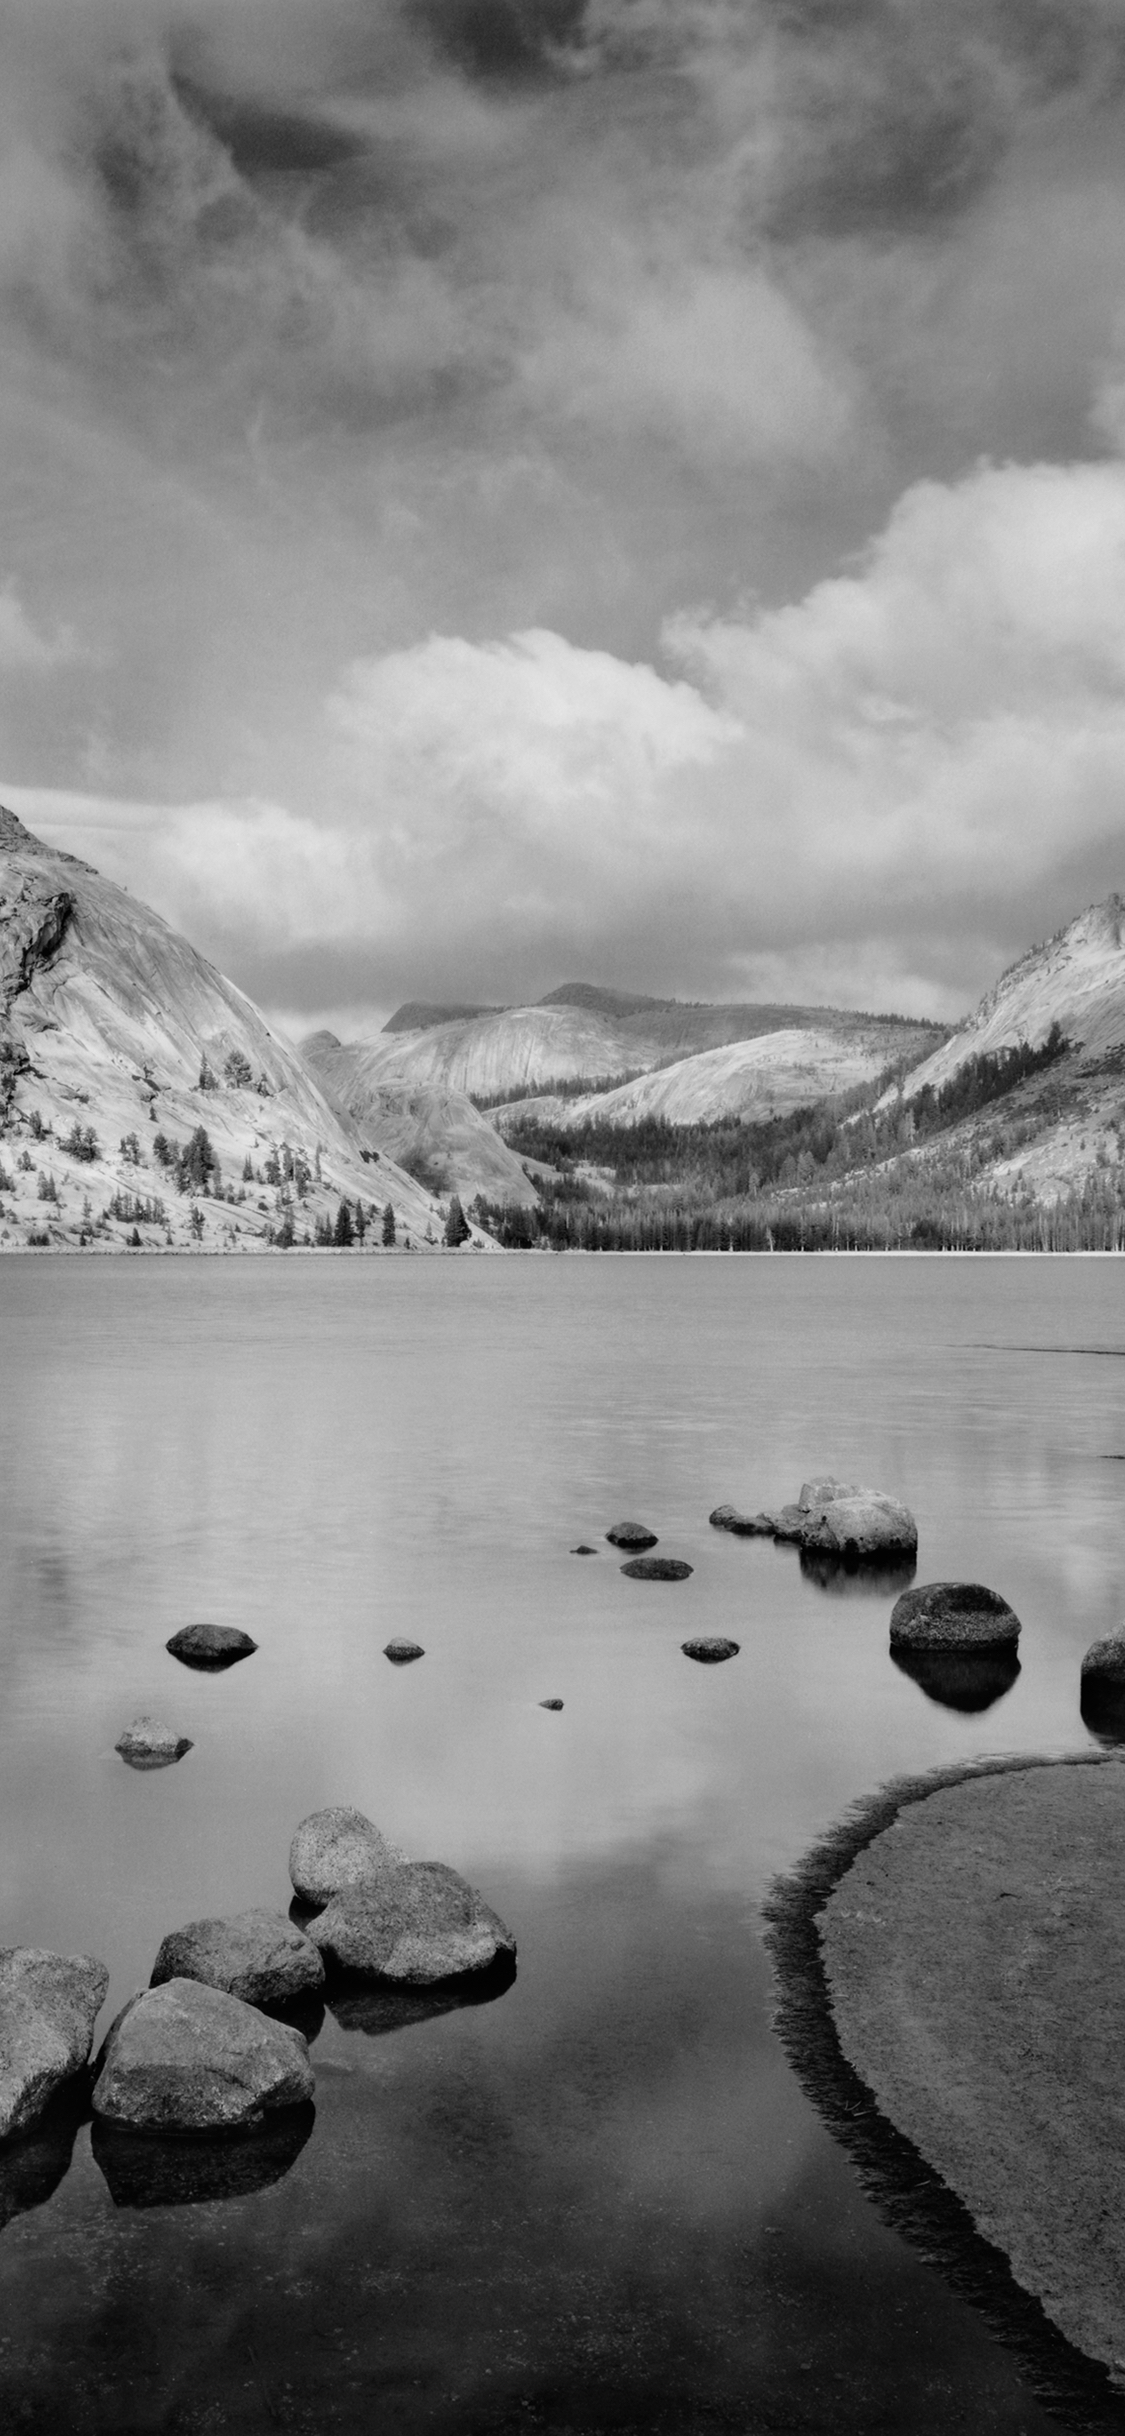 Water landscape in black and white